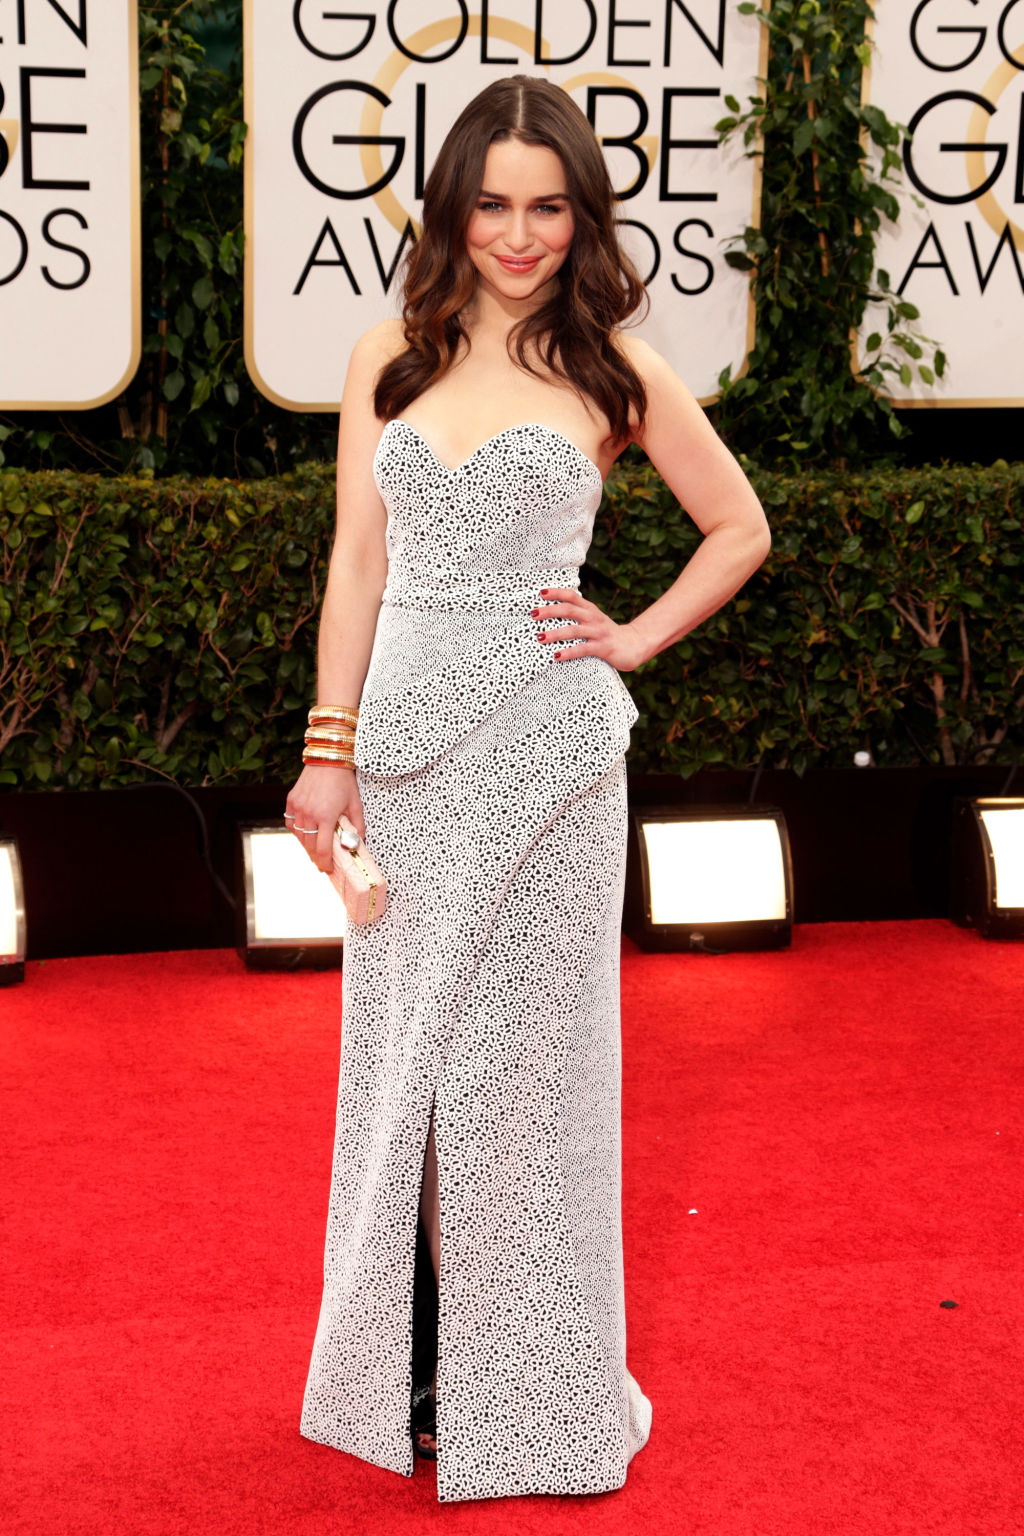 Golden globes red carpet 2014 pictures from 2014 golden globes red carpet - Golden globes red carpet ...